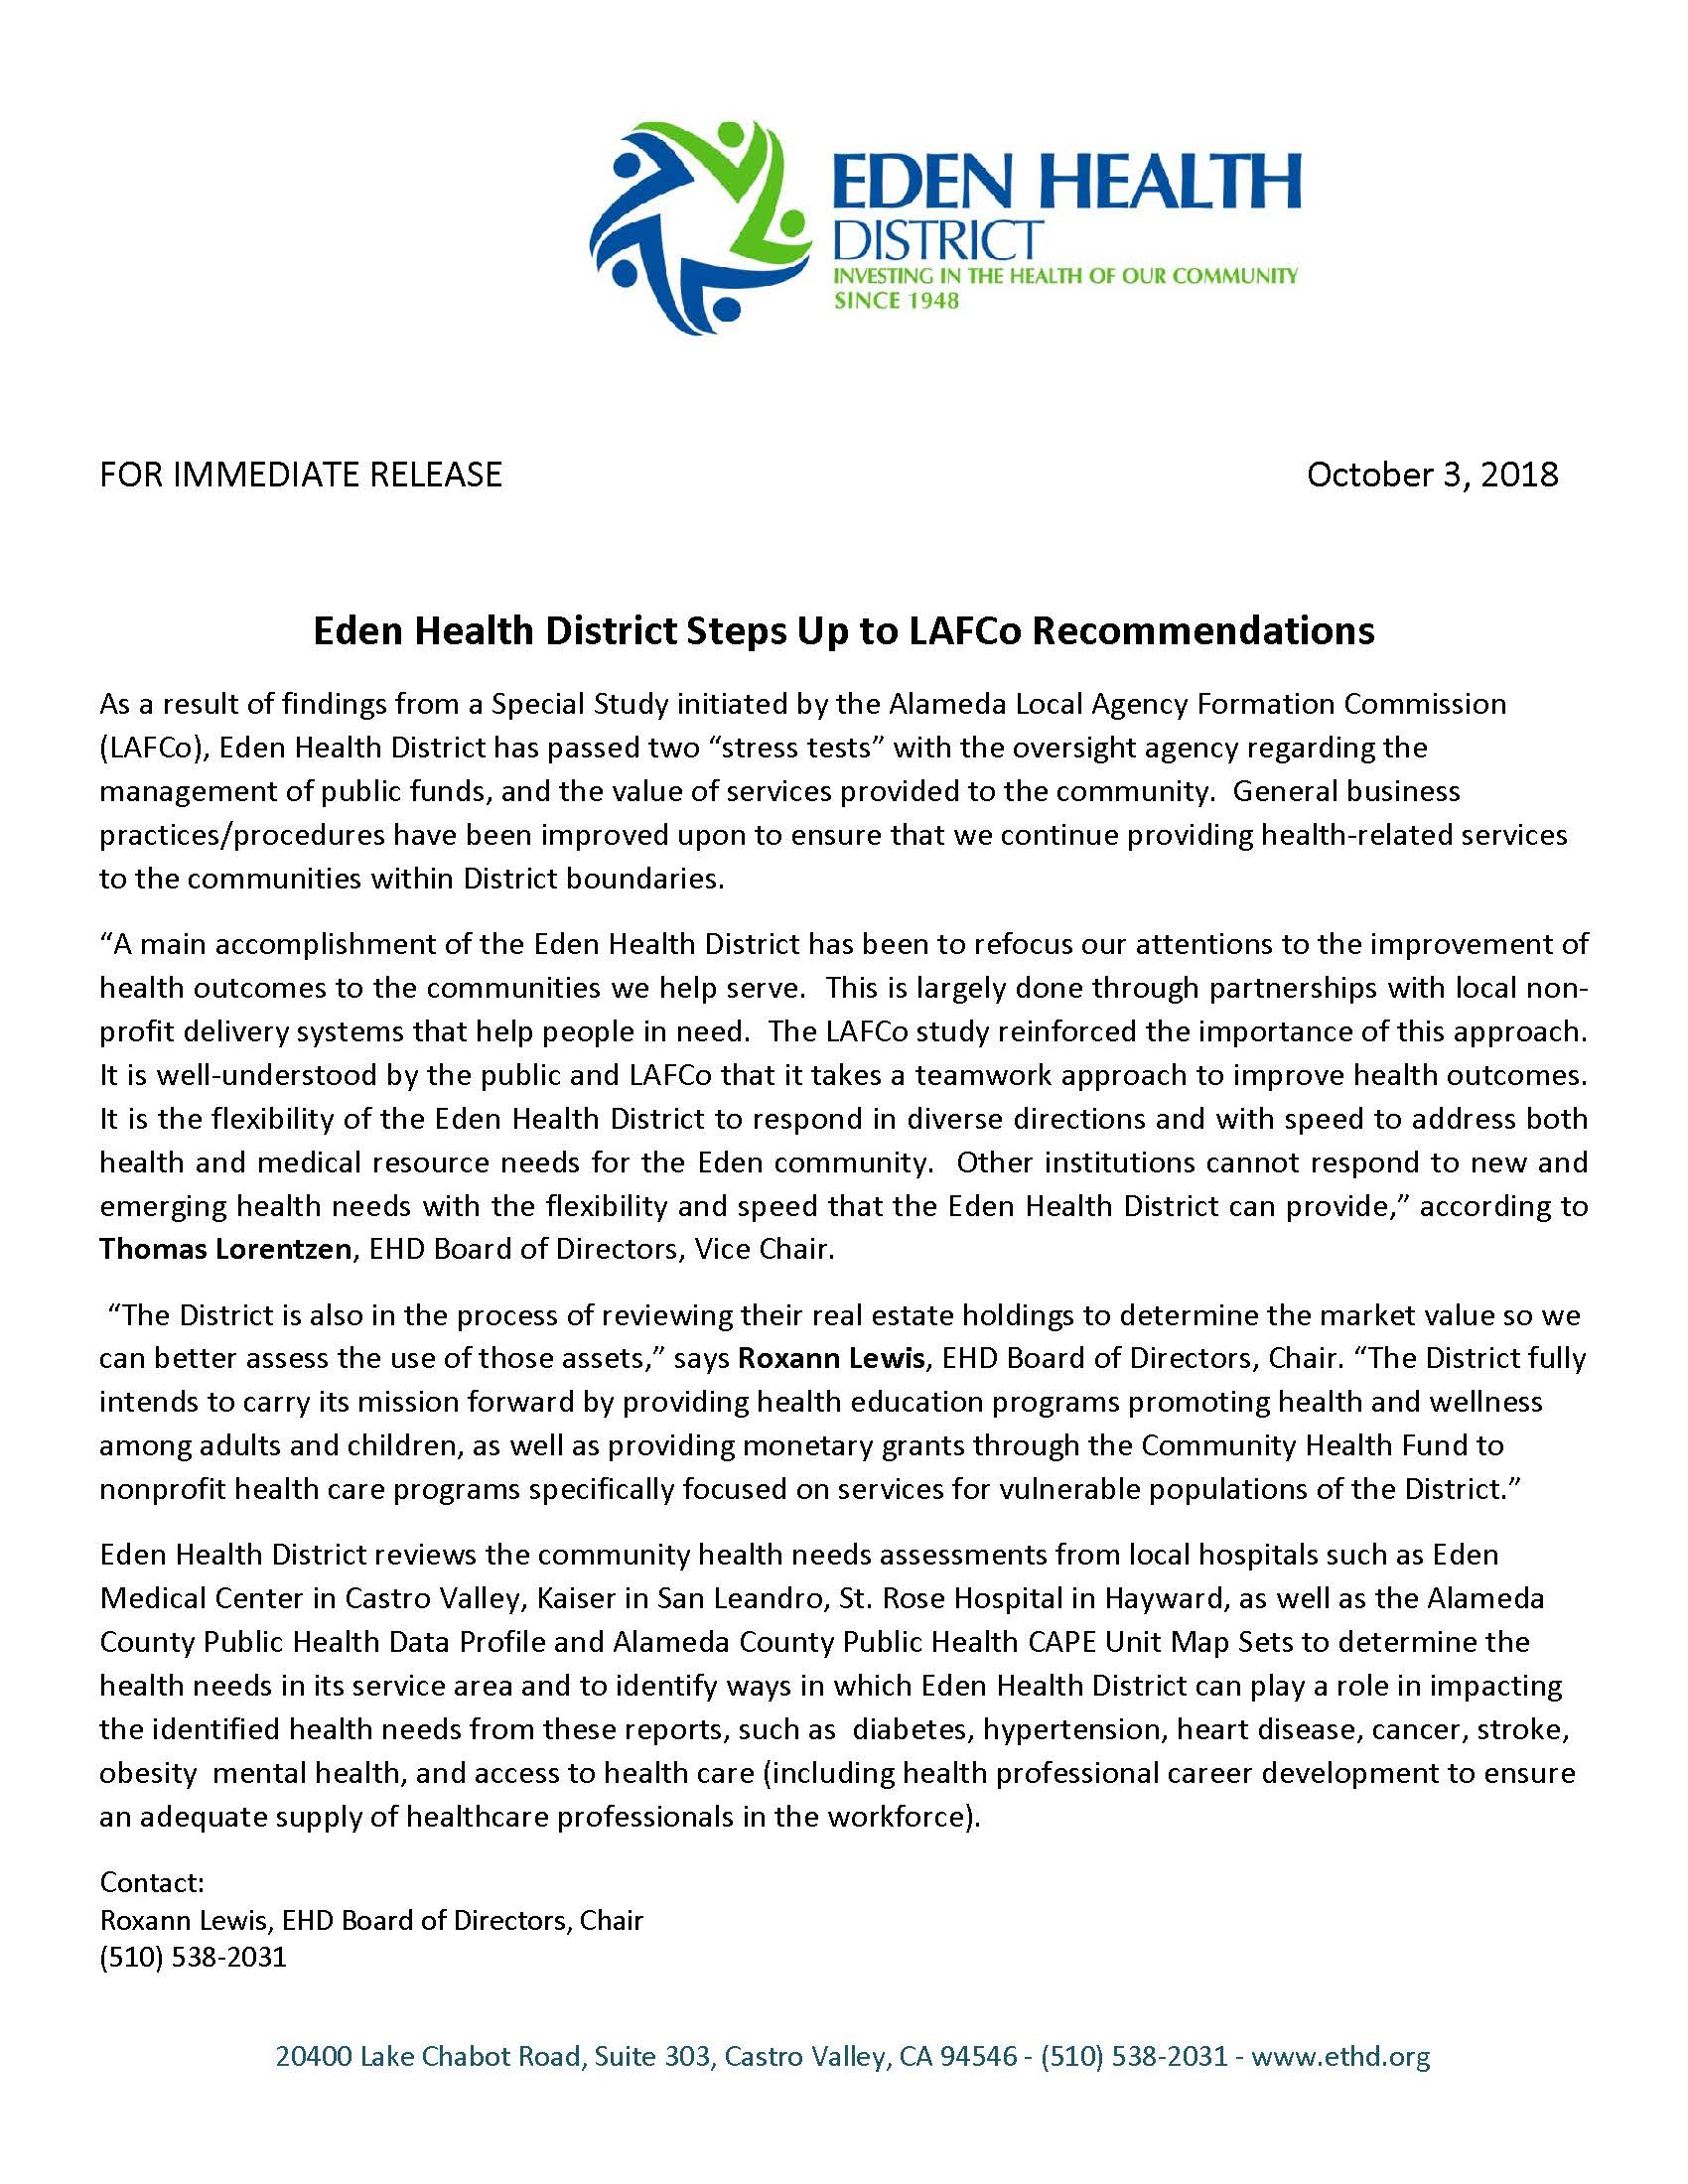 Eden Health District » Press Release – Eden Health District